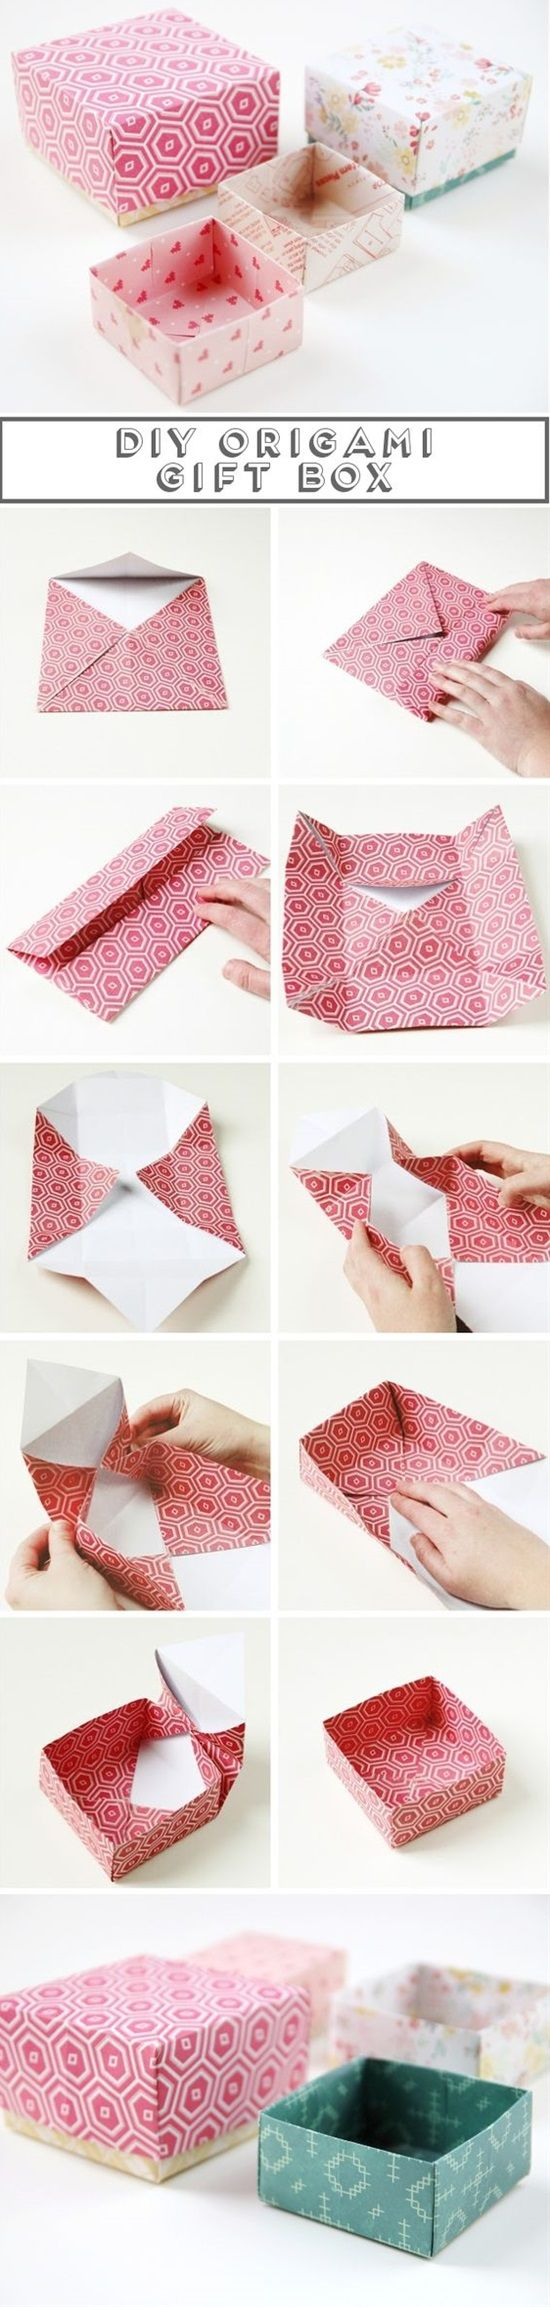 15 Easy Origami Tutorials For Anyone To Follow                                                                                                                                                                                 Mais